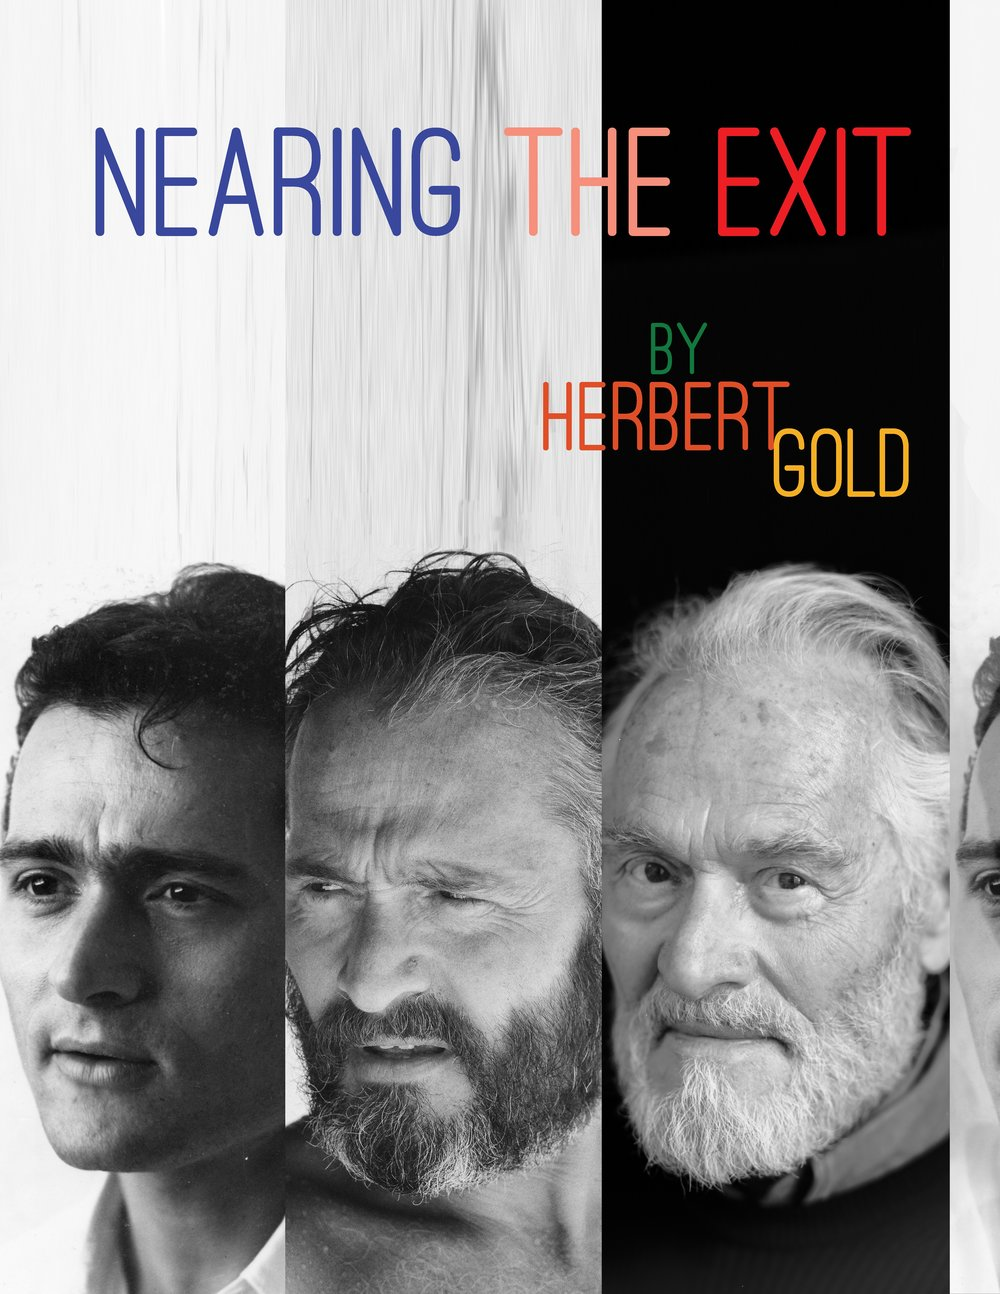 NEARING THE EXITTen Poemsby Herbert Gold - 2018Seven decades after giving up poetry, celebrated novelist, short-story writer, and essayist Herbert Gold has returned to the love of his youth, with ten powerful poems about facing the exit door. Published by Les Gottesman.Cover design by Ari Gold. Purchase hard copy HERE.